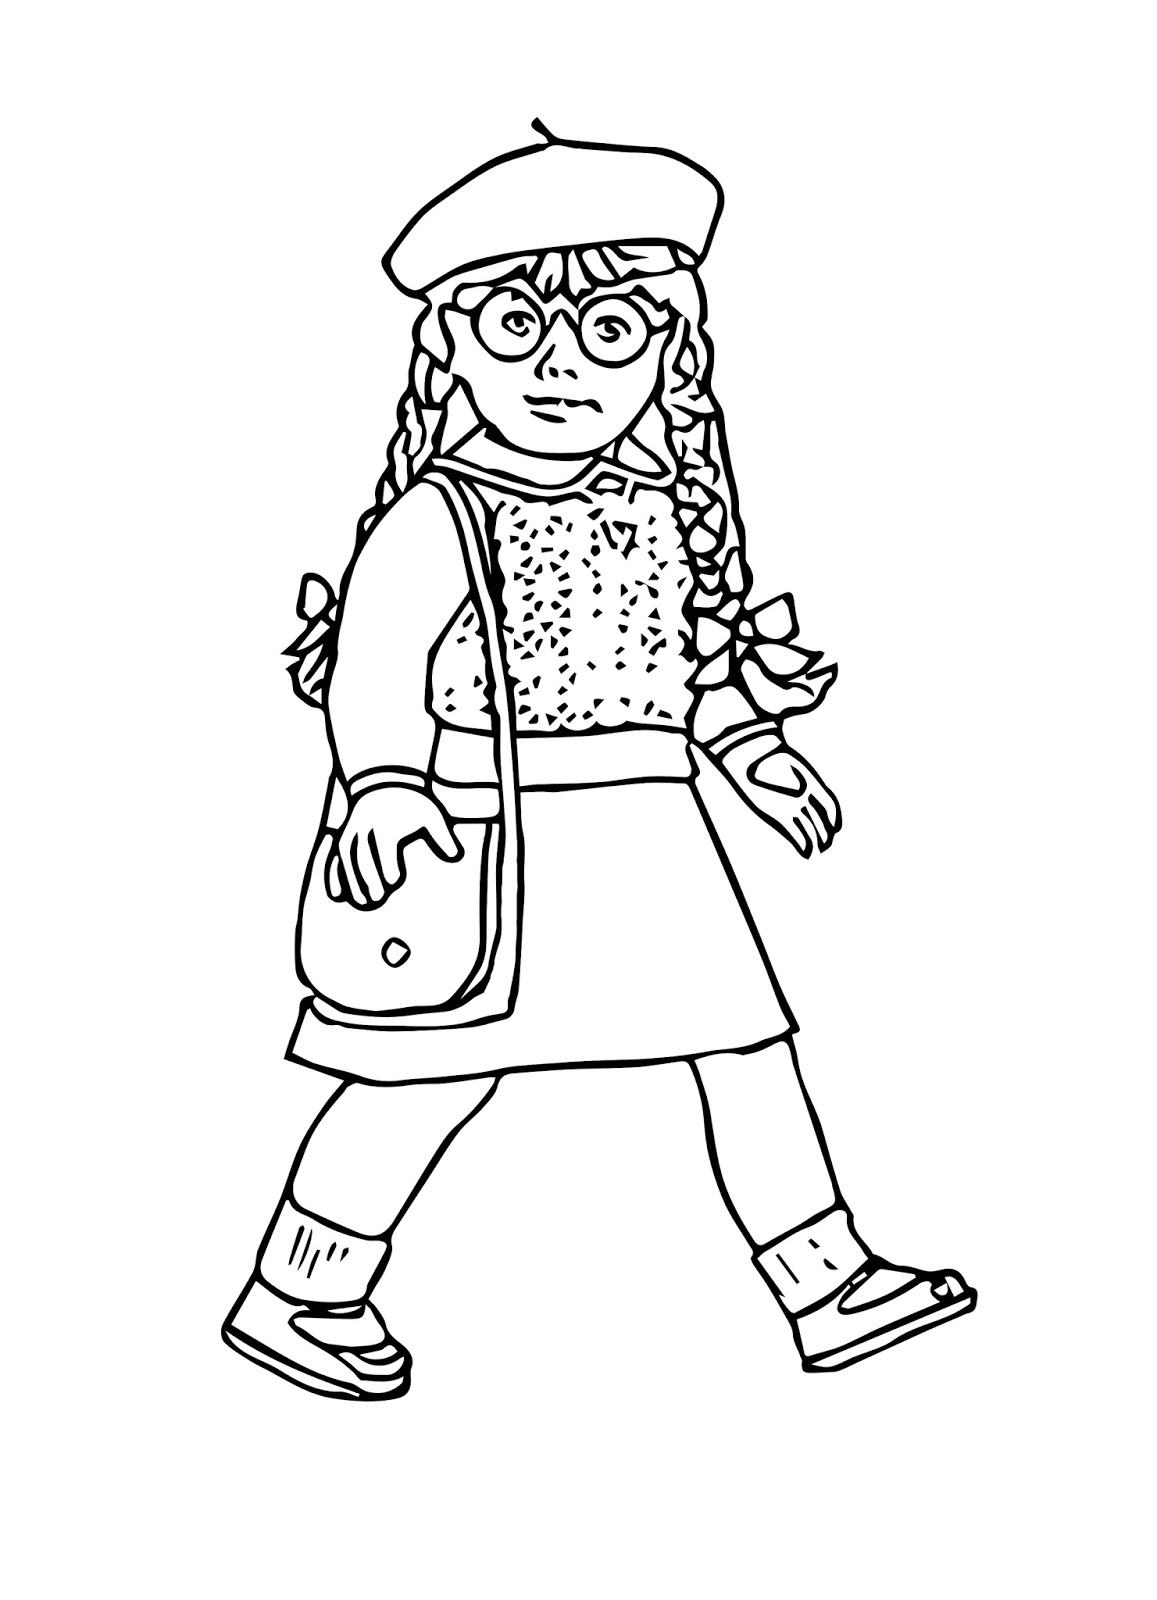 pictures of american girl dolls to color free printable american girl doll coloring pages to girl dolls american pictures of color